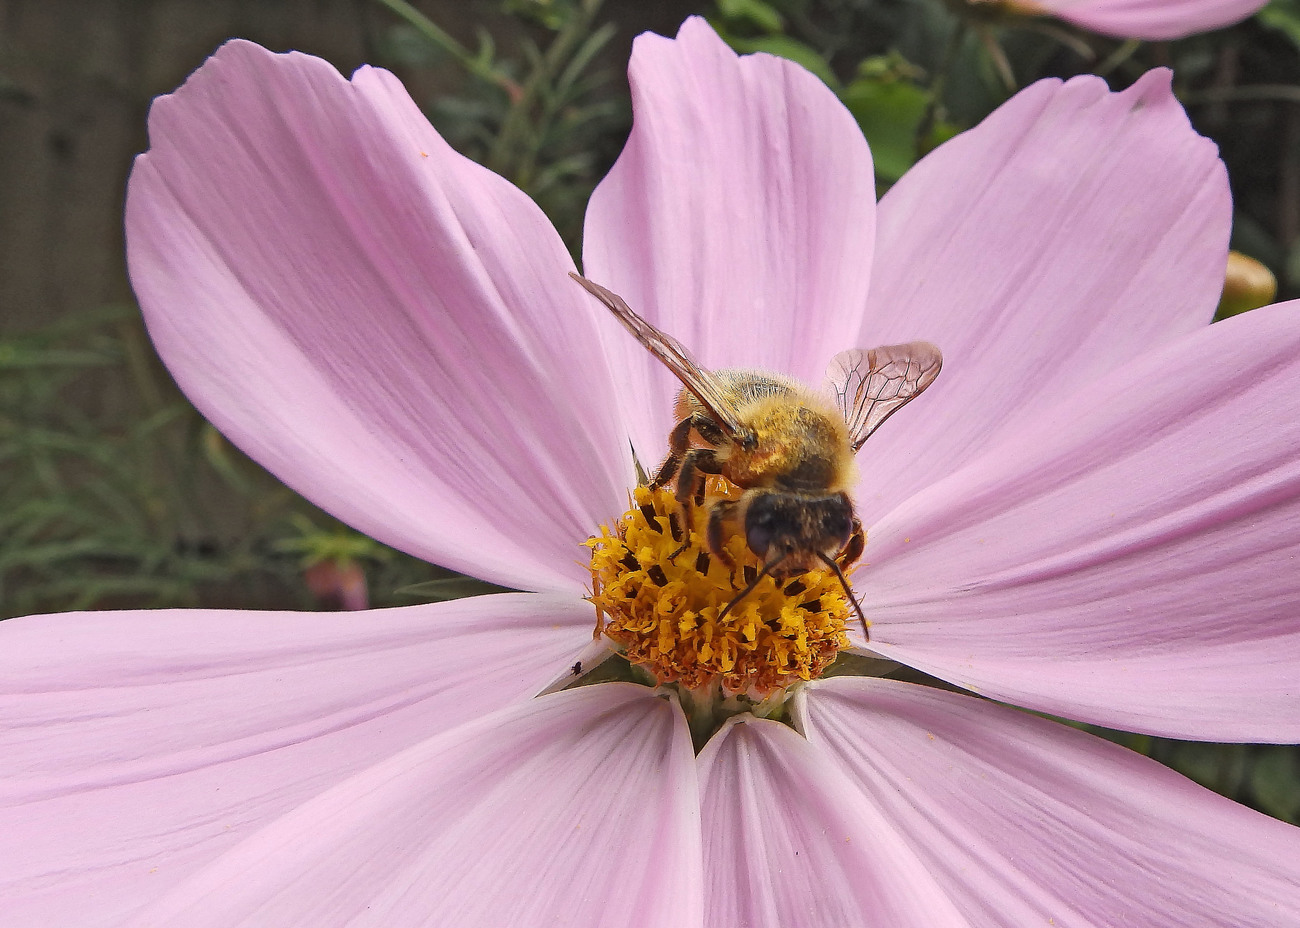 Bee on Cosmos flower.